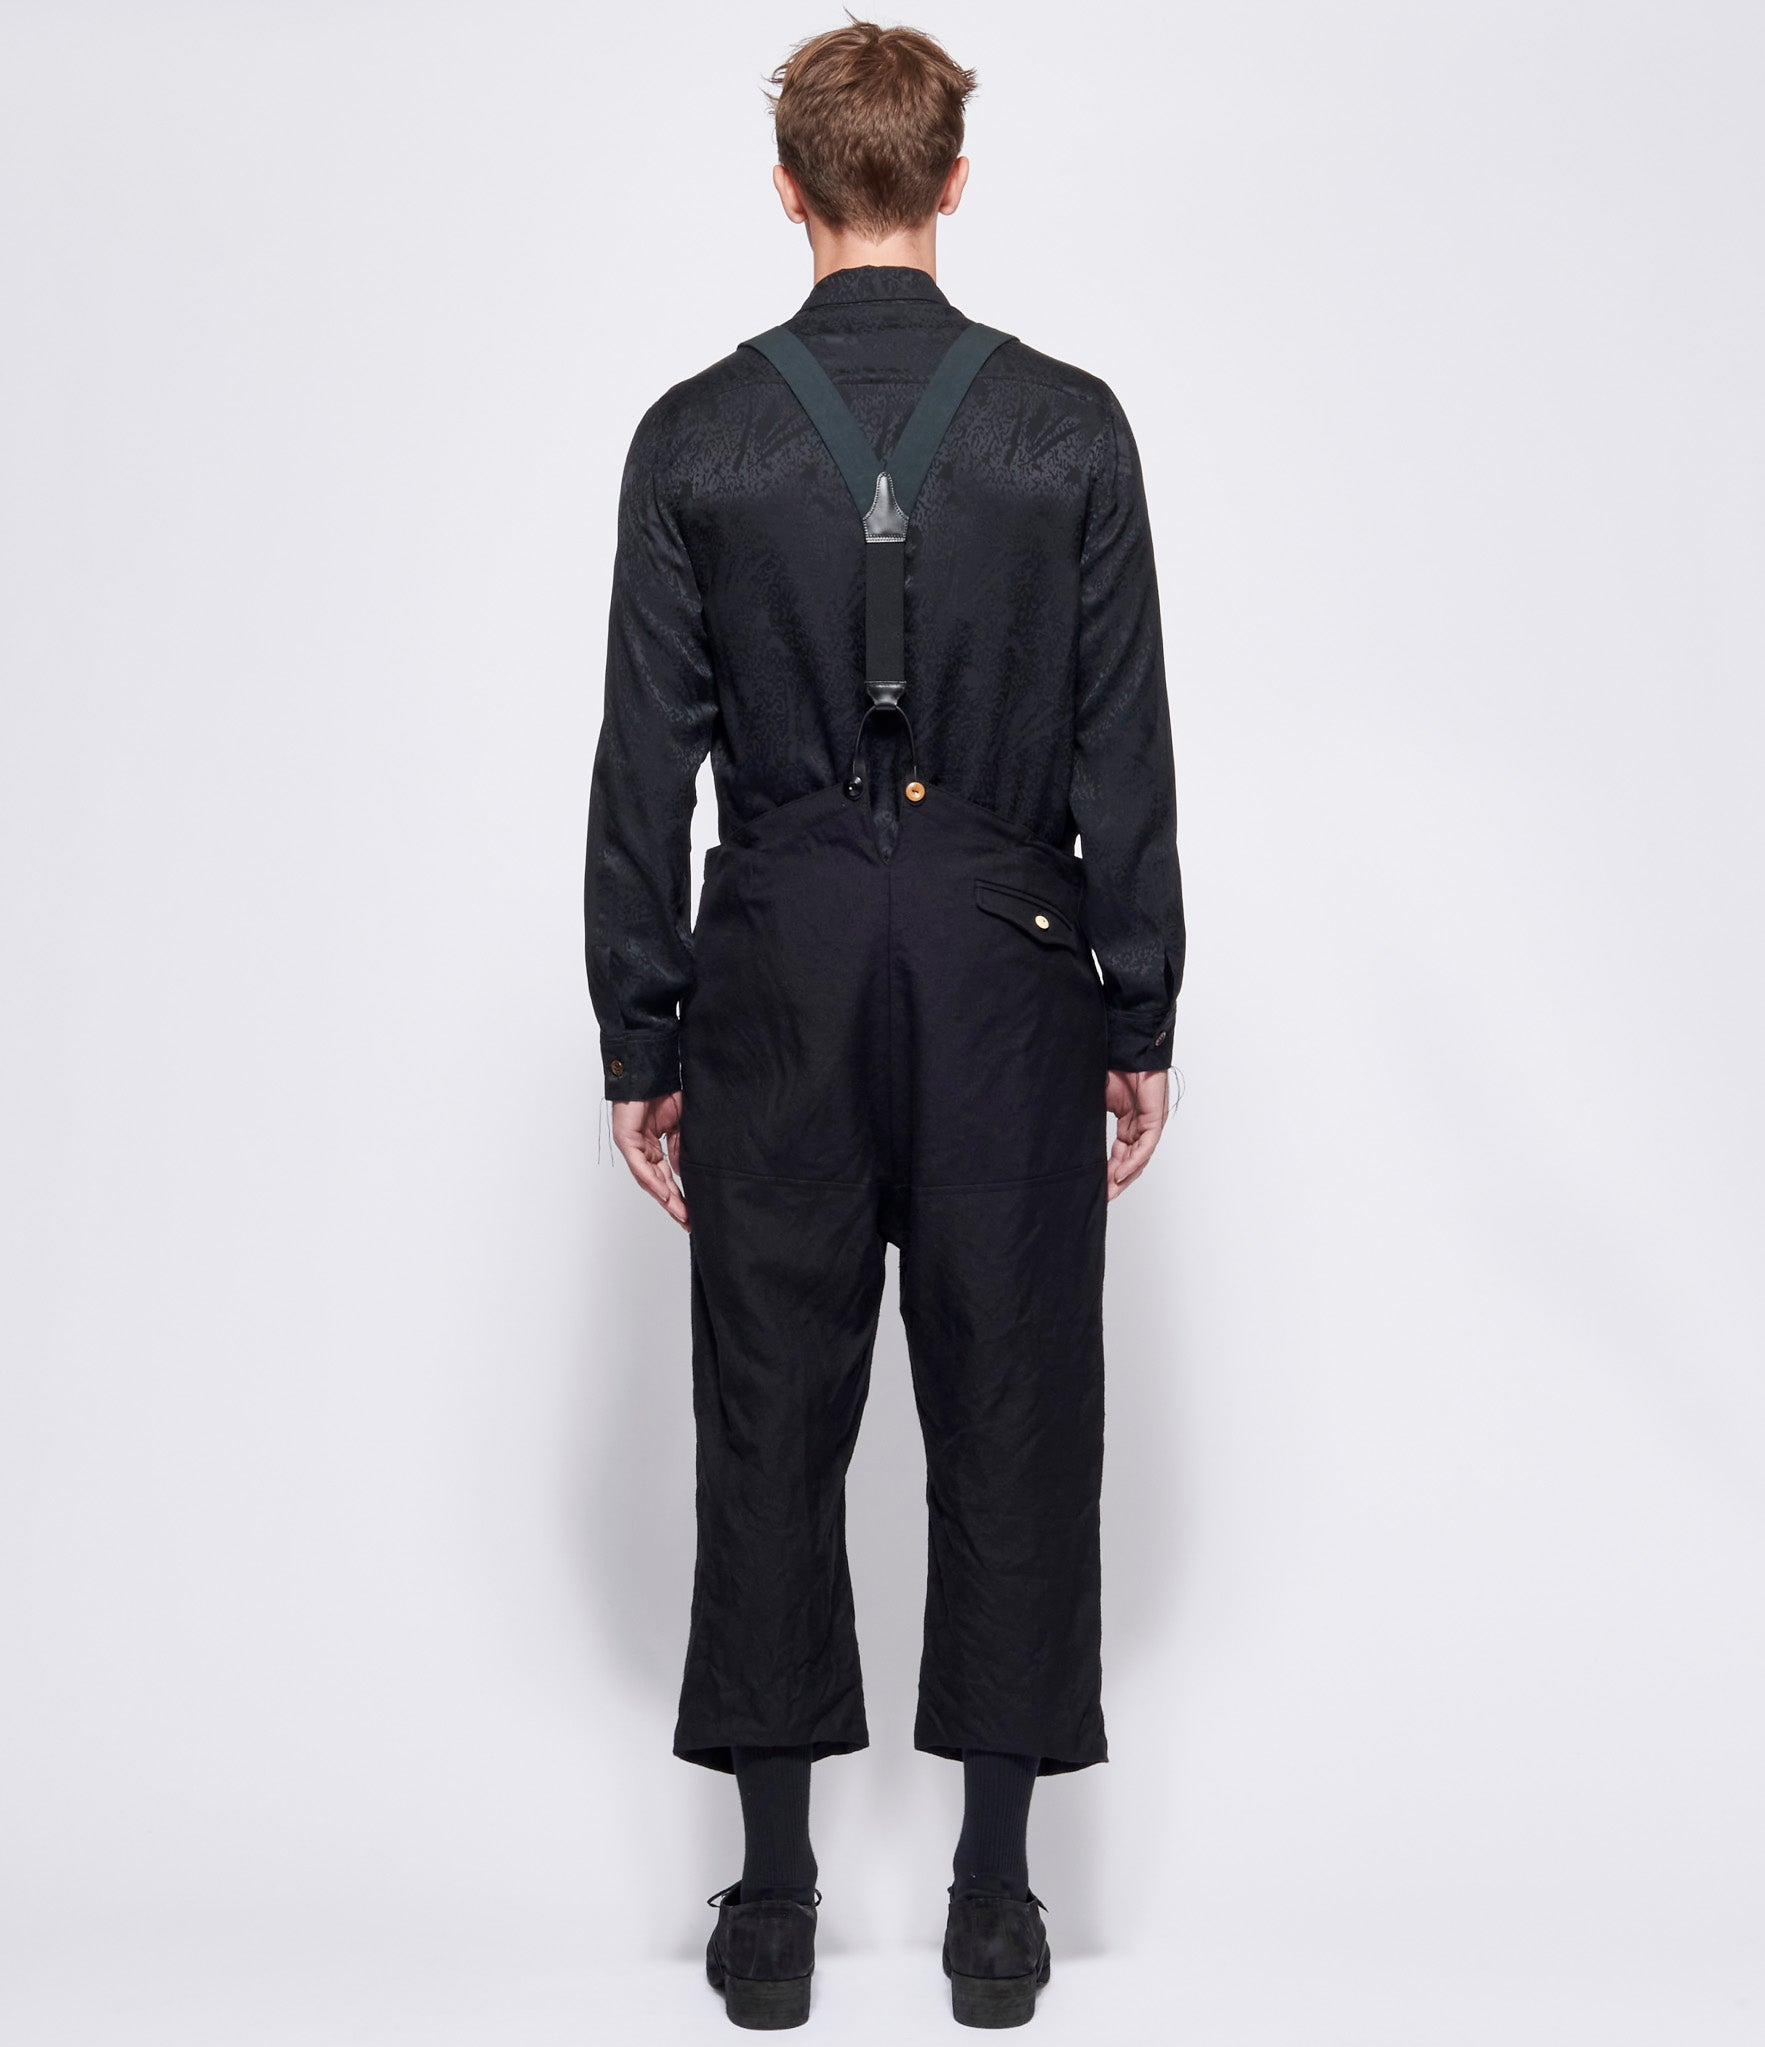 Archivio J.M. Ribot Suspender Trousers